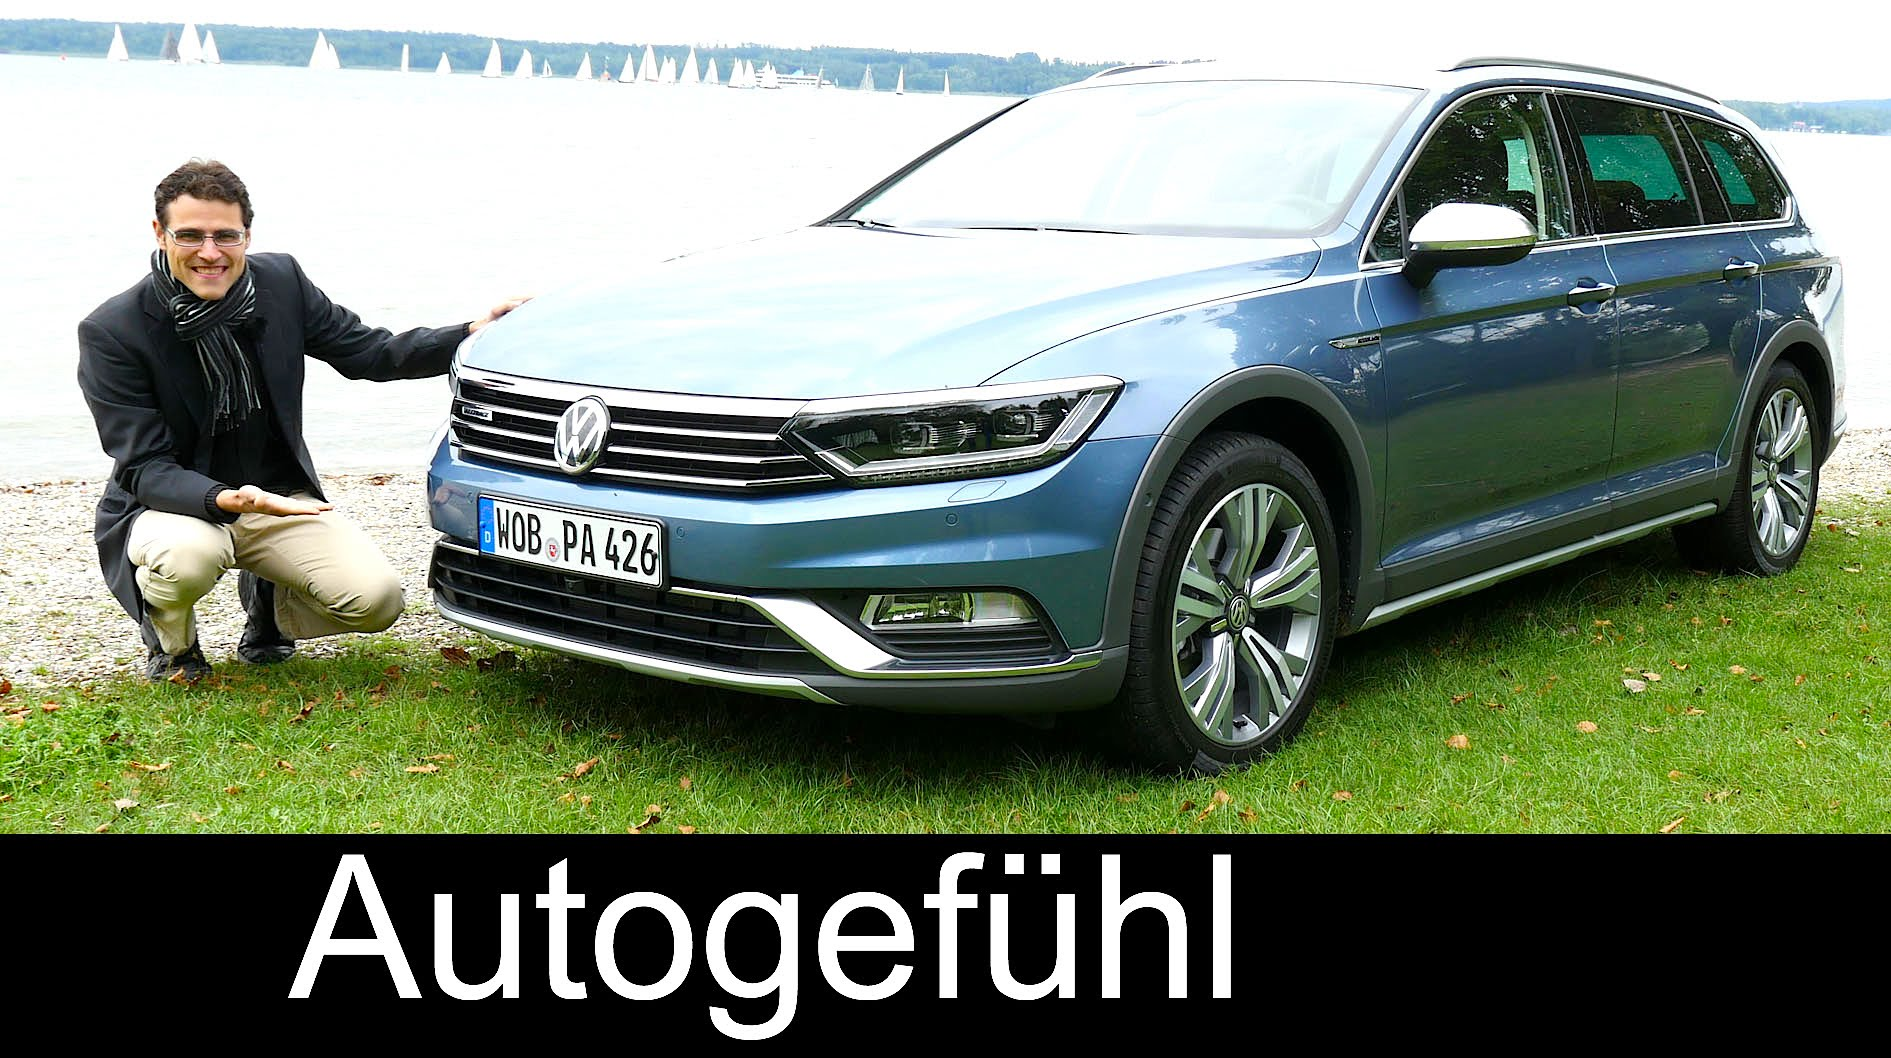 New Vw Volkswagen Passat Alltrack Full Review Test Driven B8 Offroad Estate Kombi 2016 Fastcarauto Com